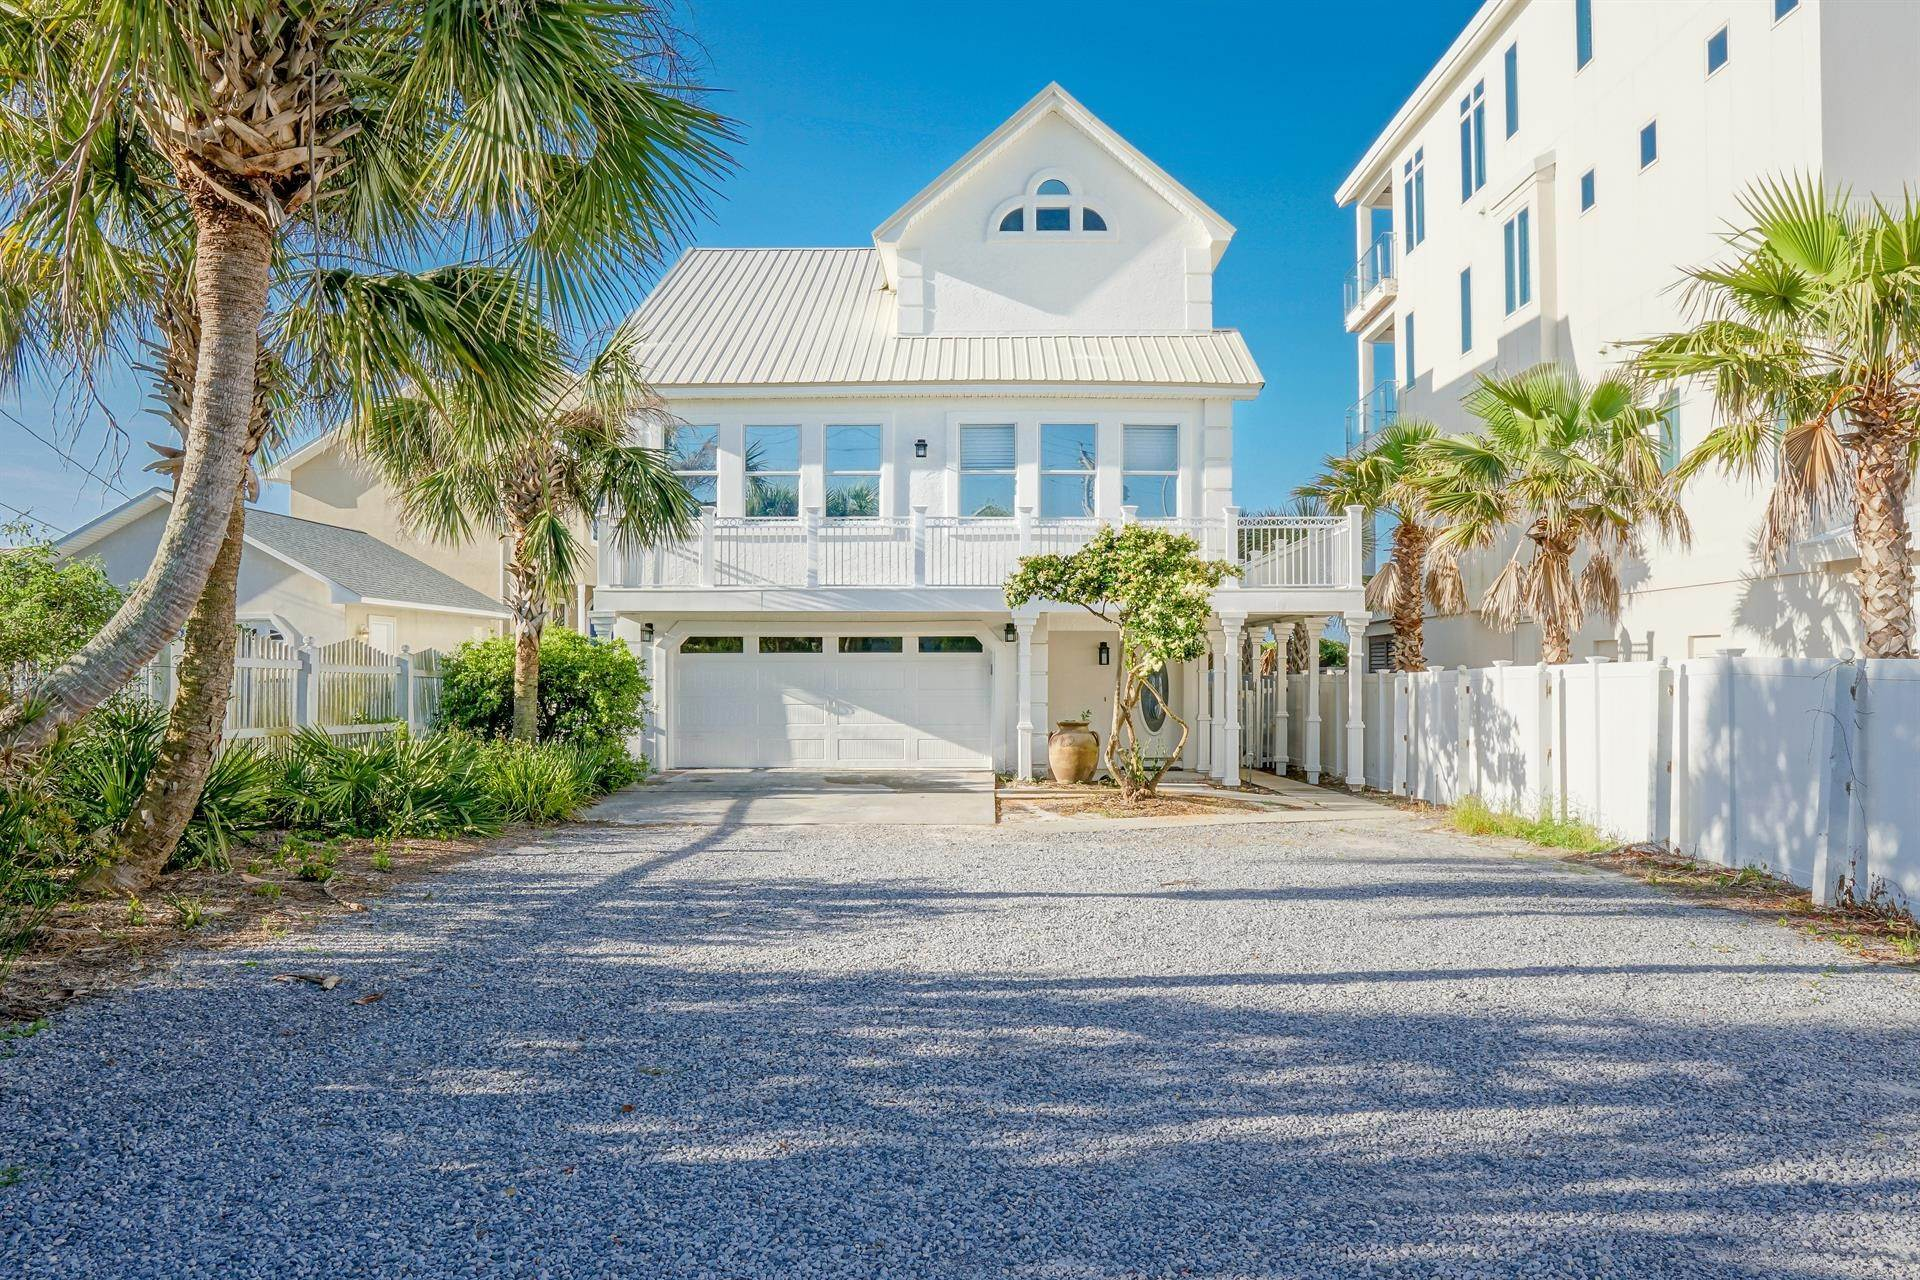 Single Family Home 为 出租 在 Oceanfront on Scenic 30A, Florida 8870 E. County Hwy 30A, Seacrest, FL 32461 西克雷斯特, 佛罗里达州,32461 美国